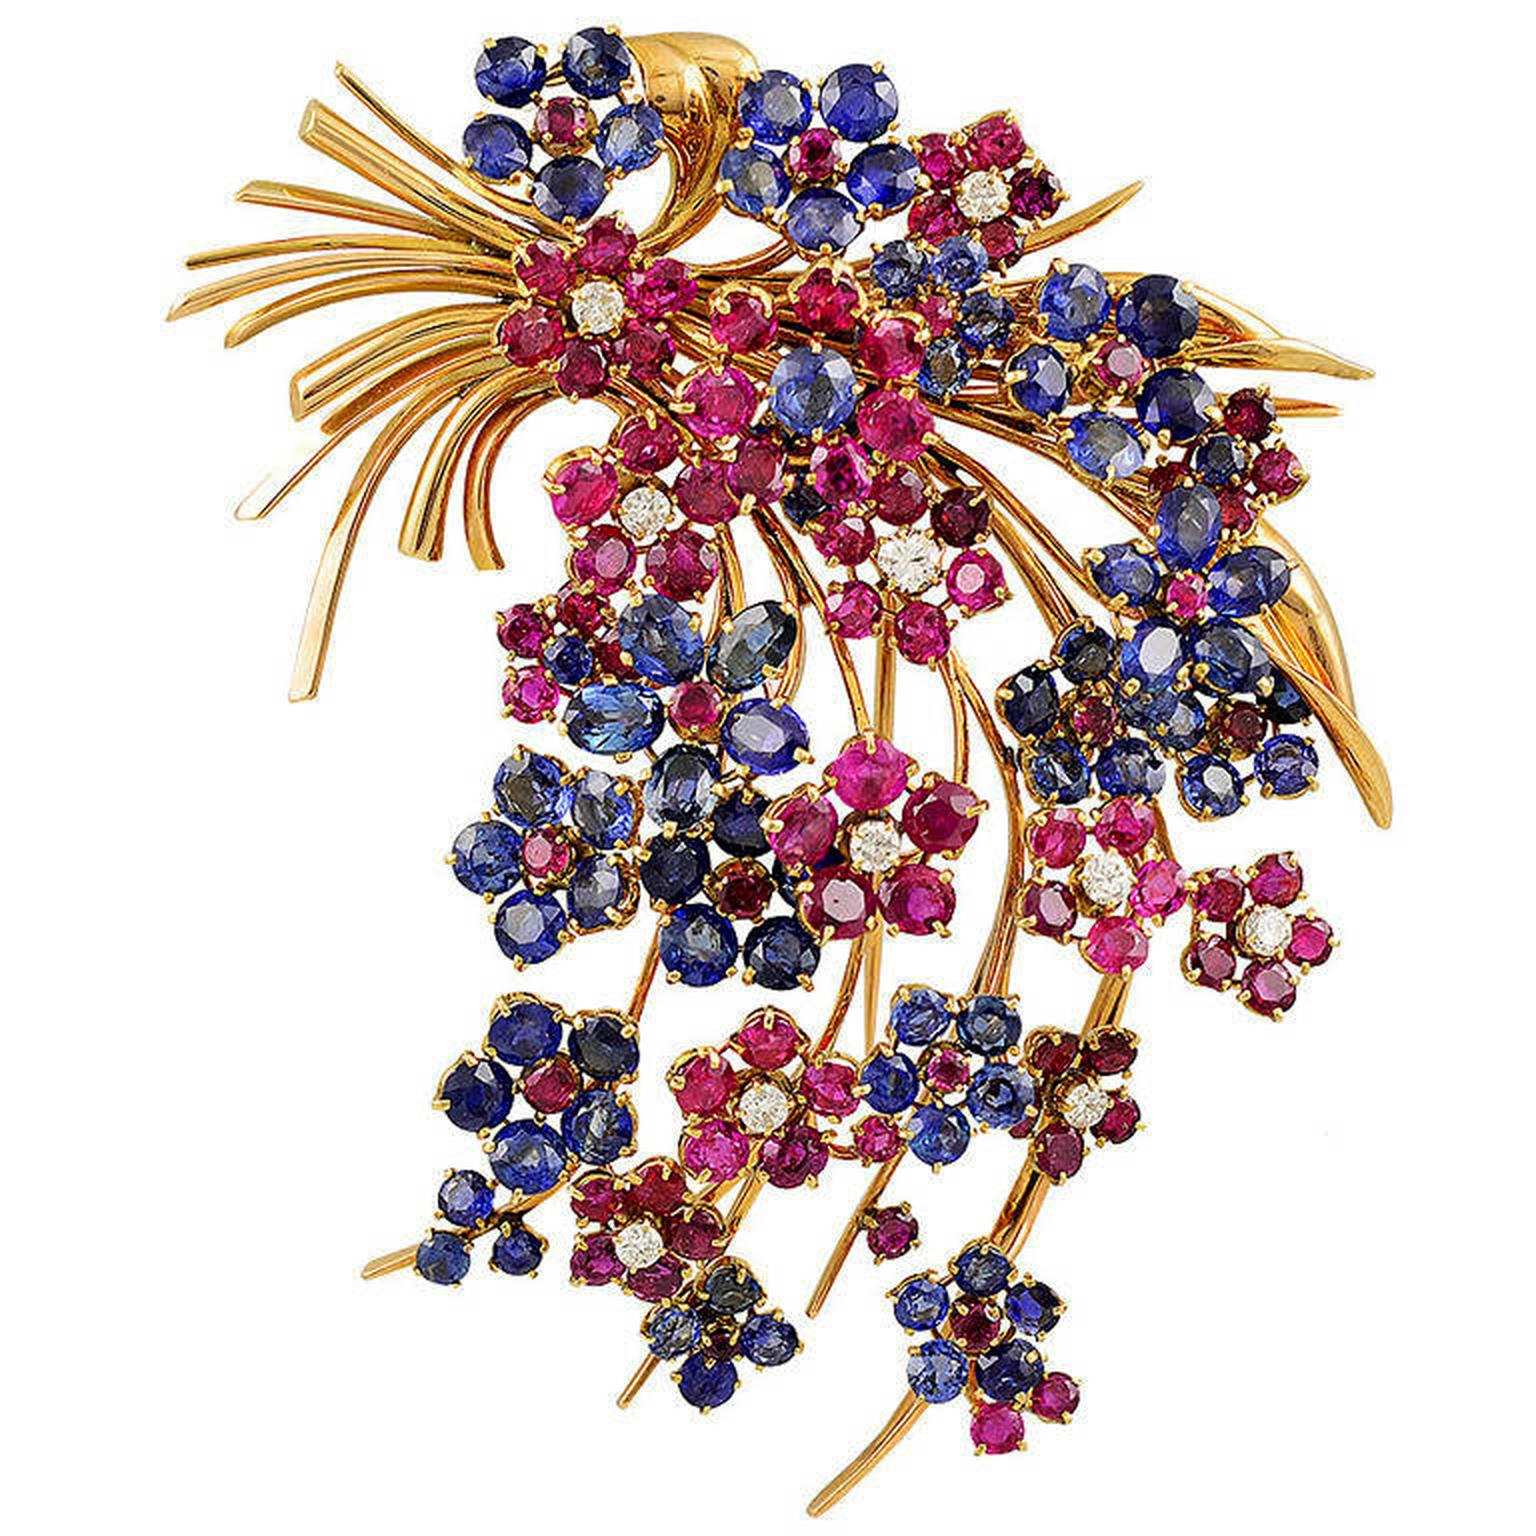 Yafa Van Cleef & Arpels Hawaii brooch